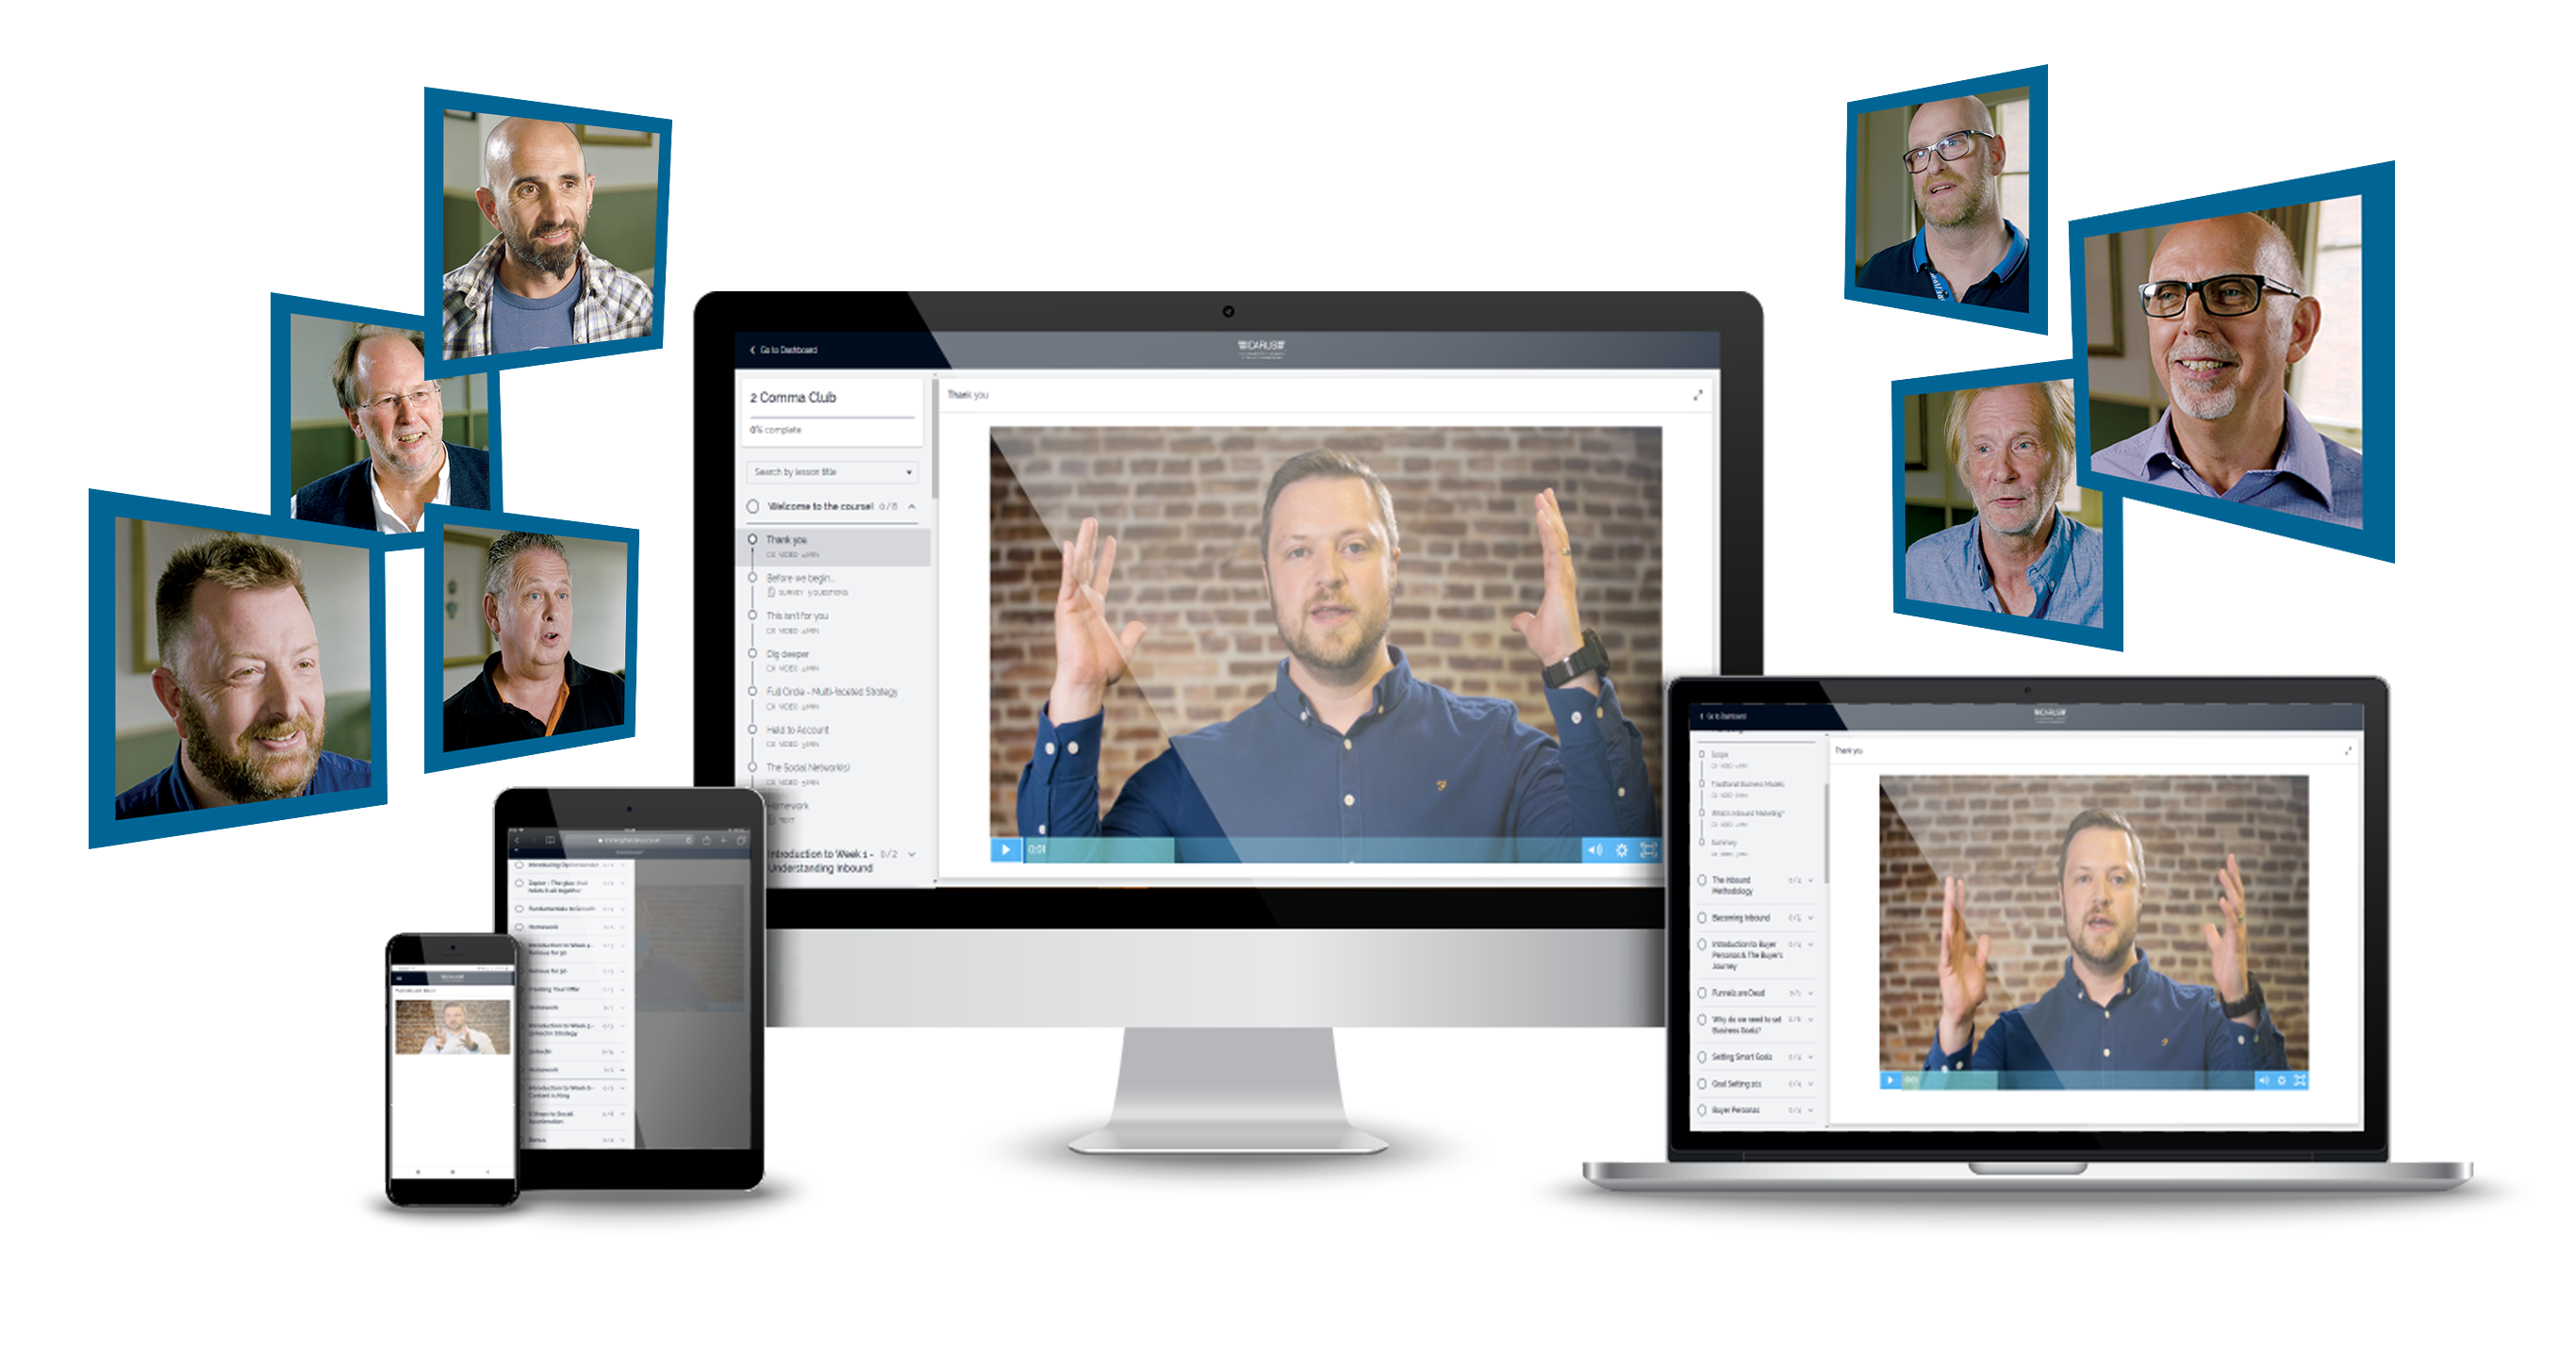 2 CC - E-Learning pictures with images of clients